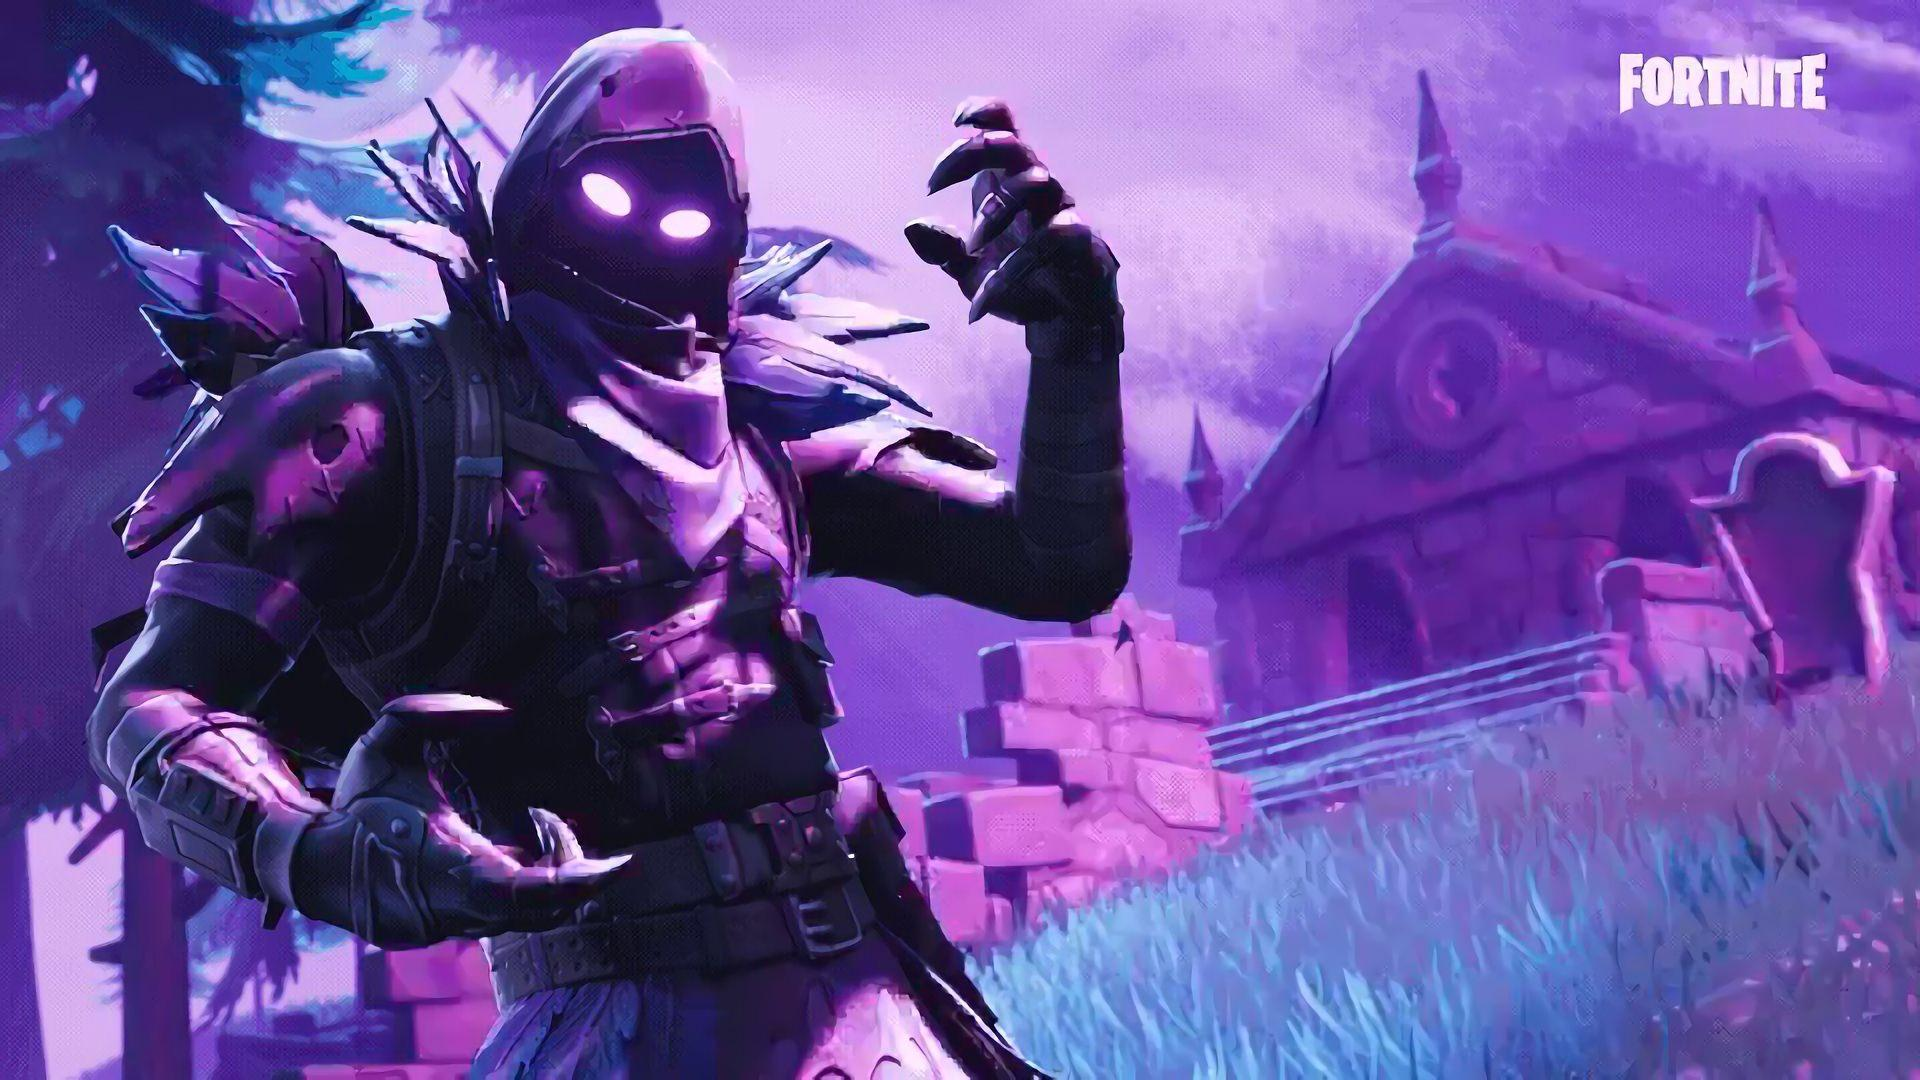 1080p Fortnite Wallpaper Hd